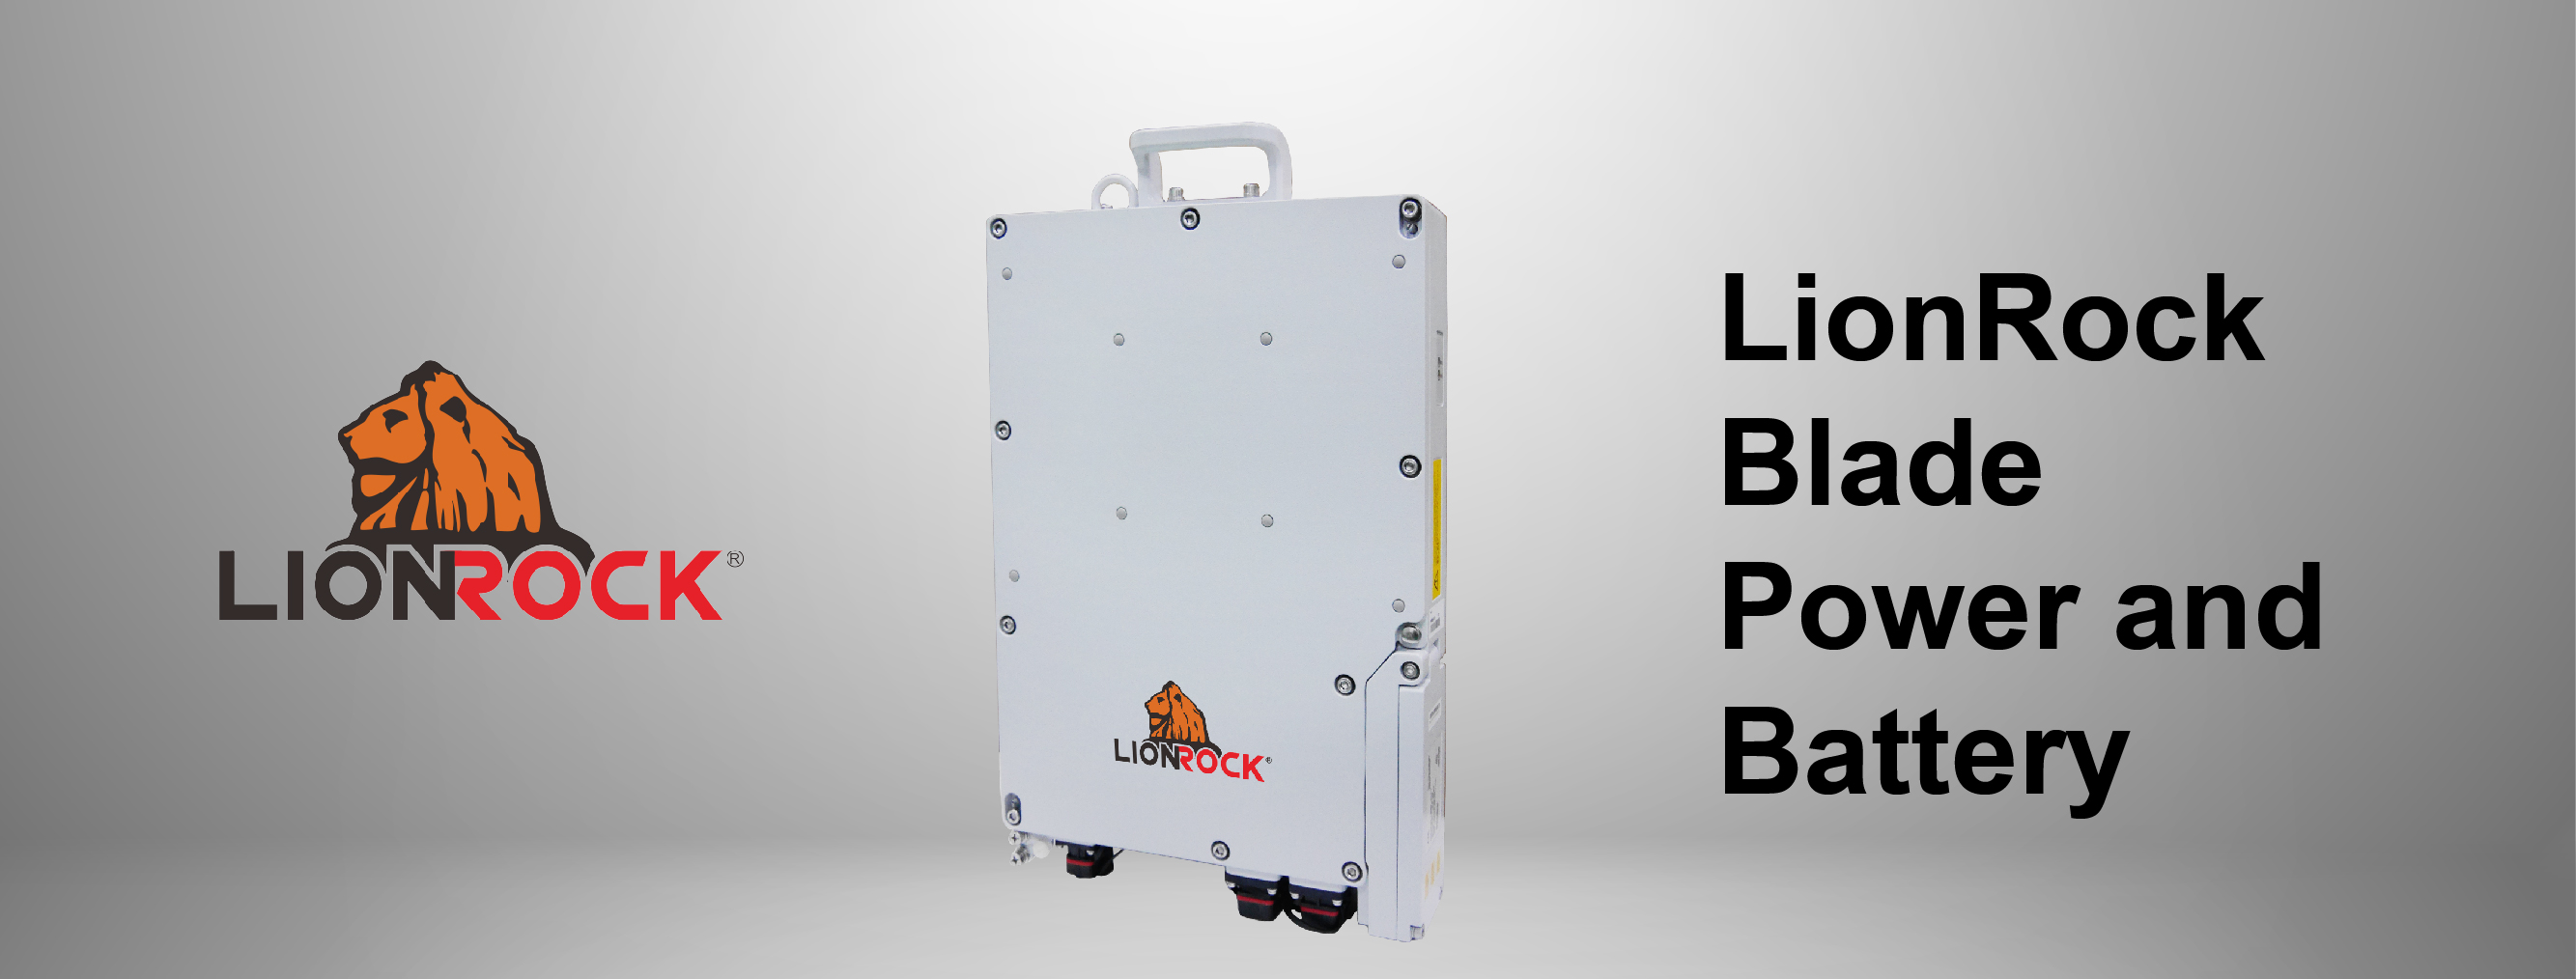 LionRock Blade Power and Battery,Products,NEWS,3TECH